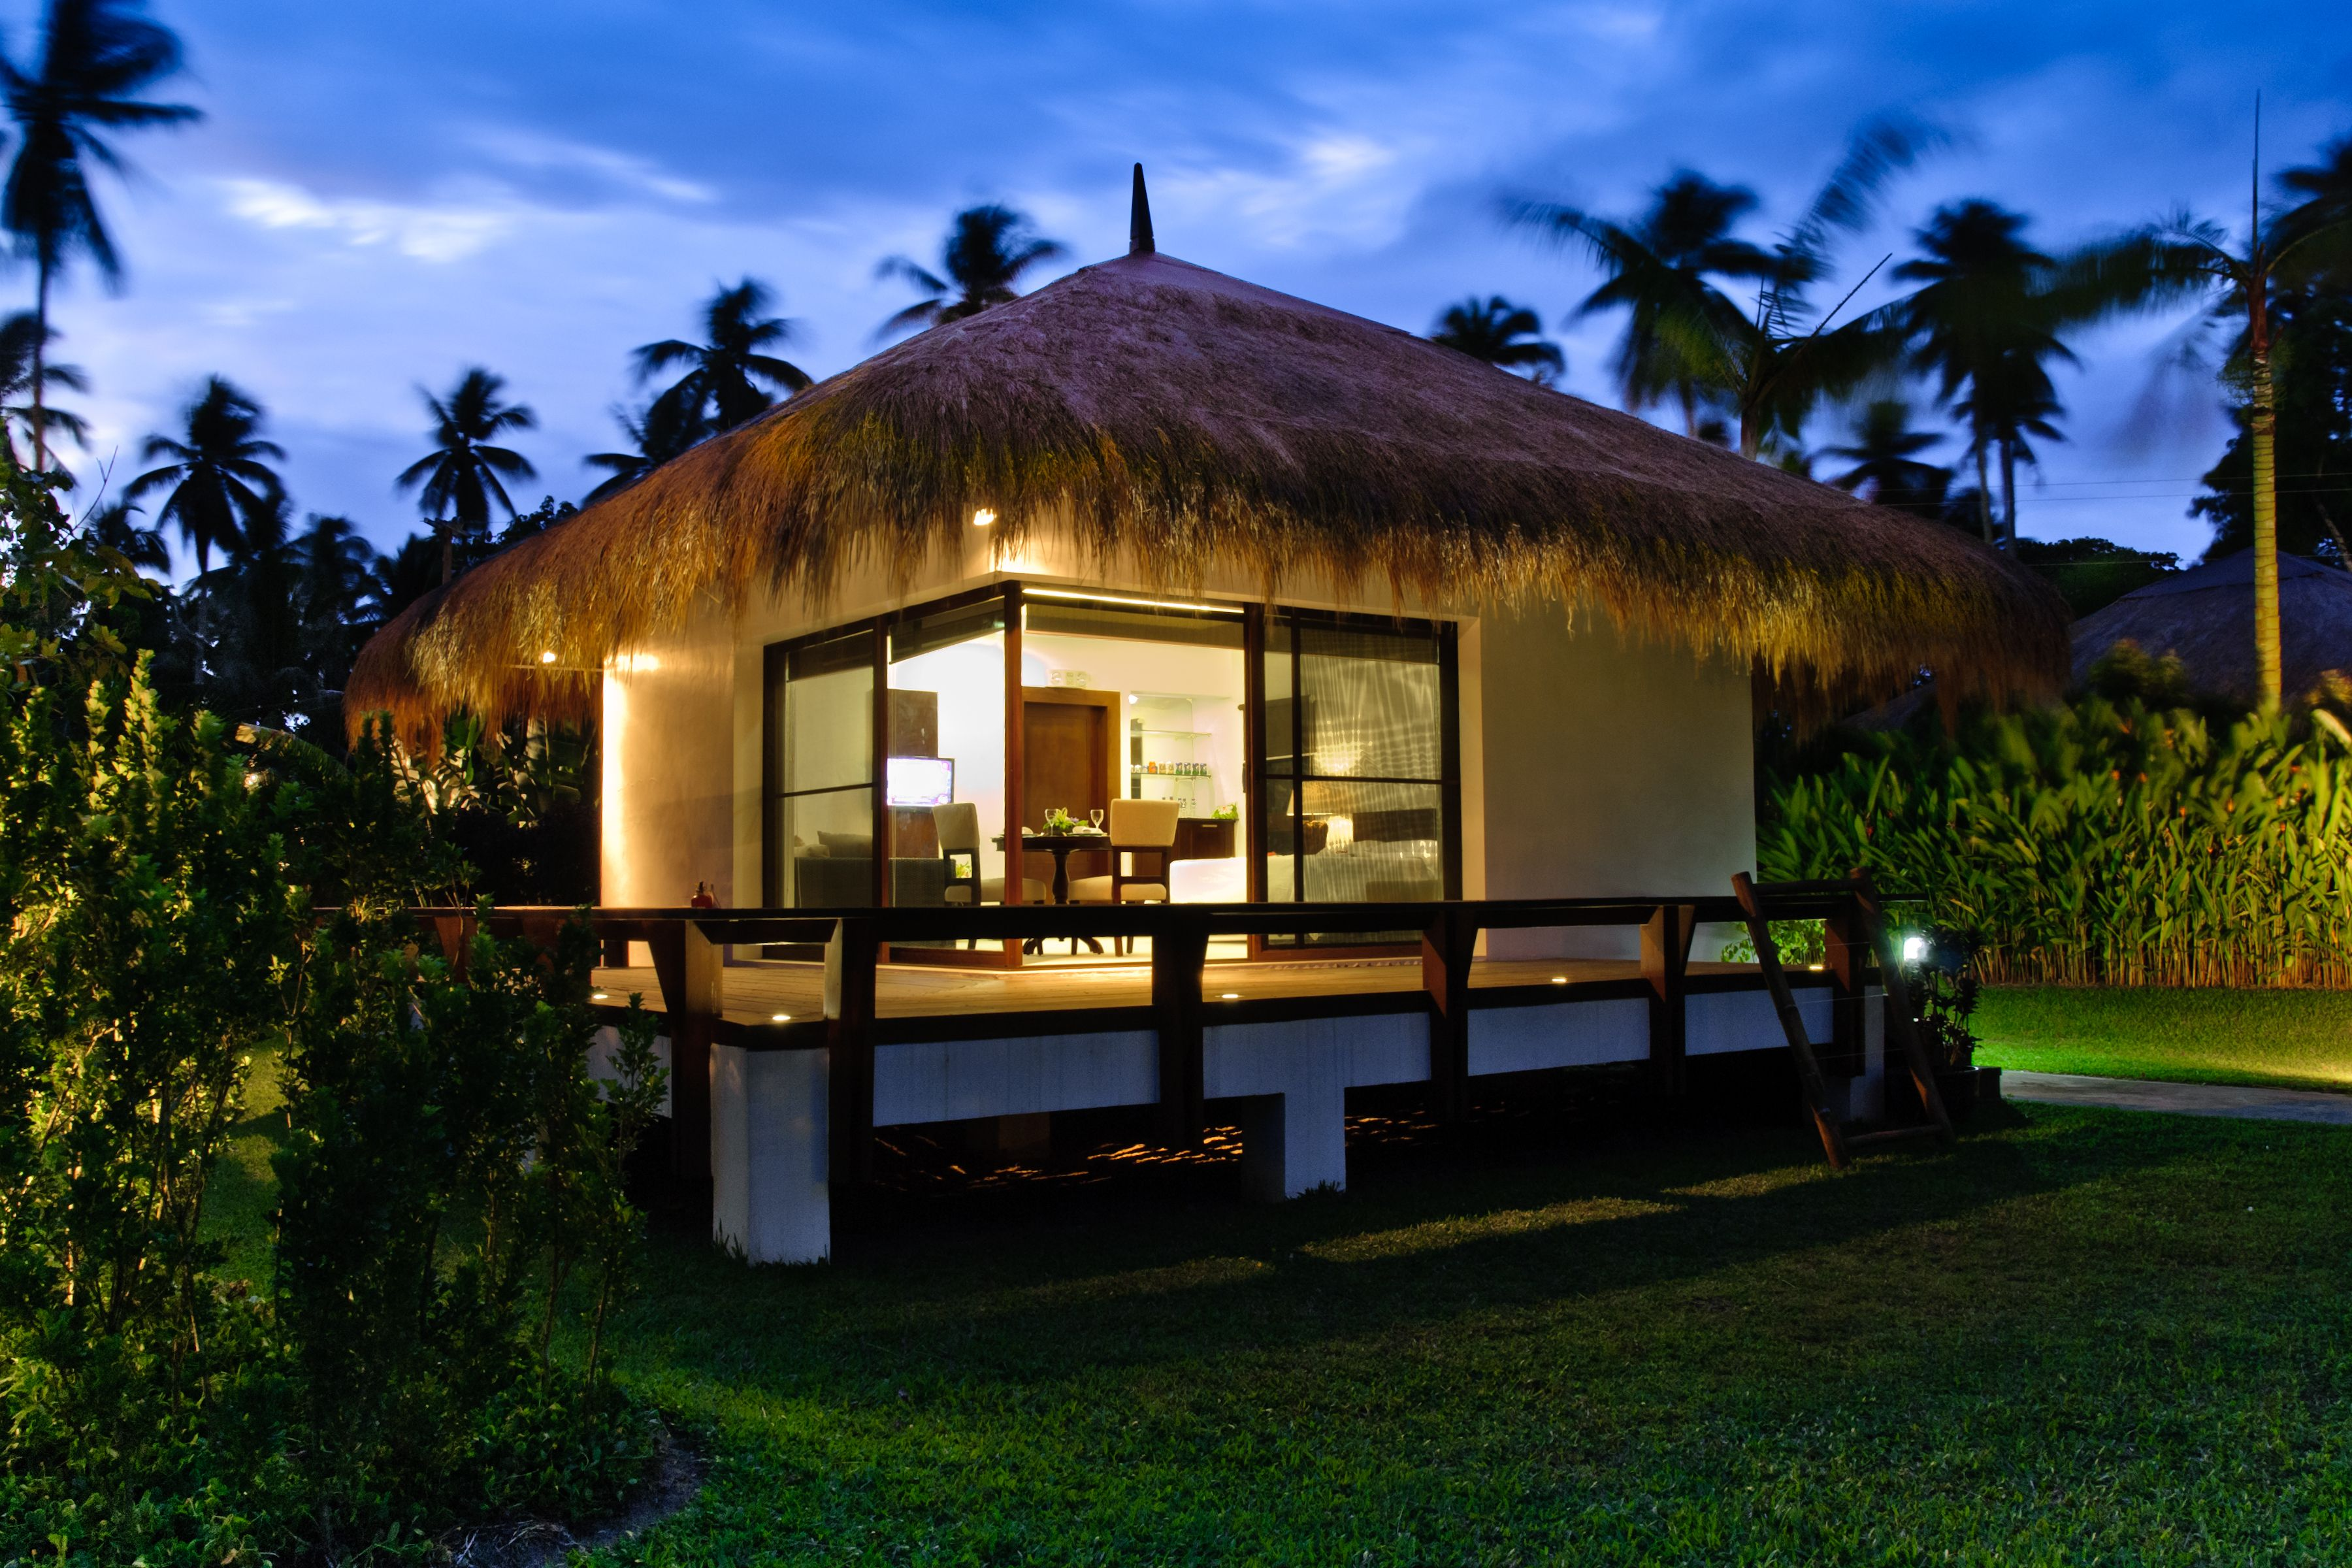 Coolest Modern Nipa Hut Design Interior 11 With Images Rest